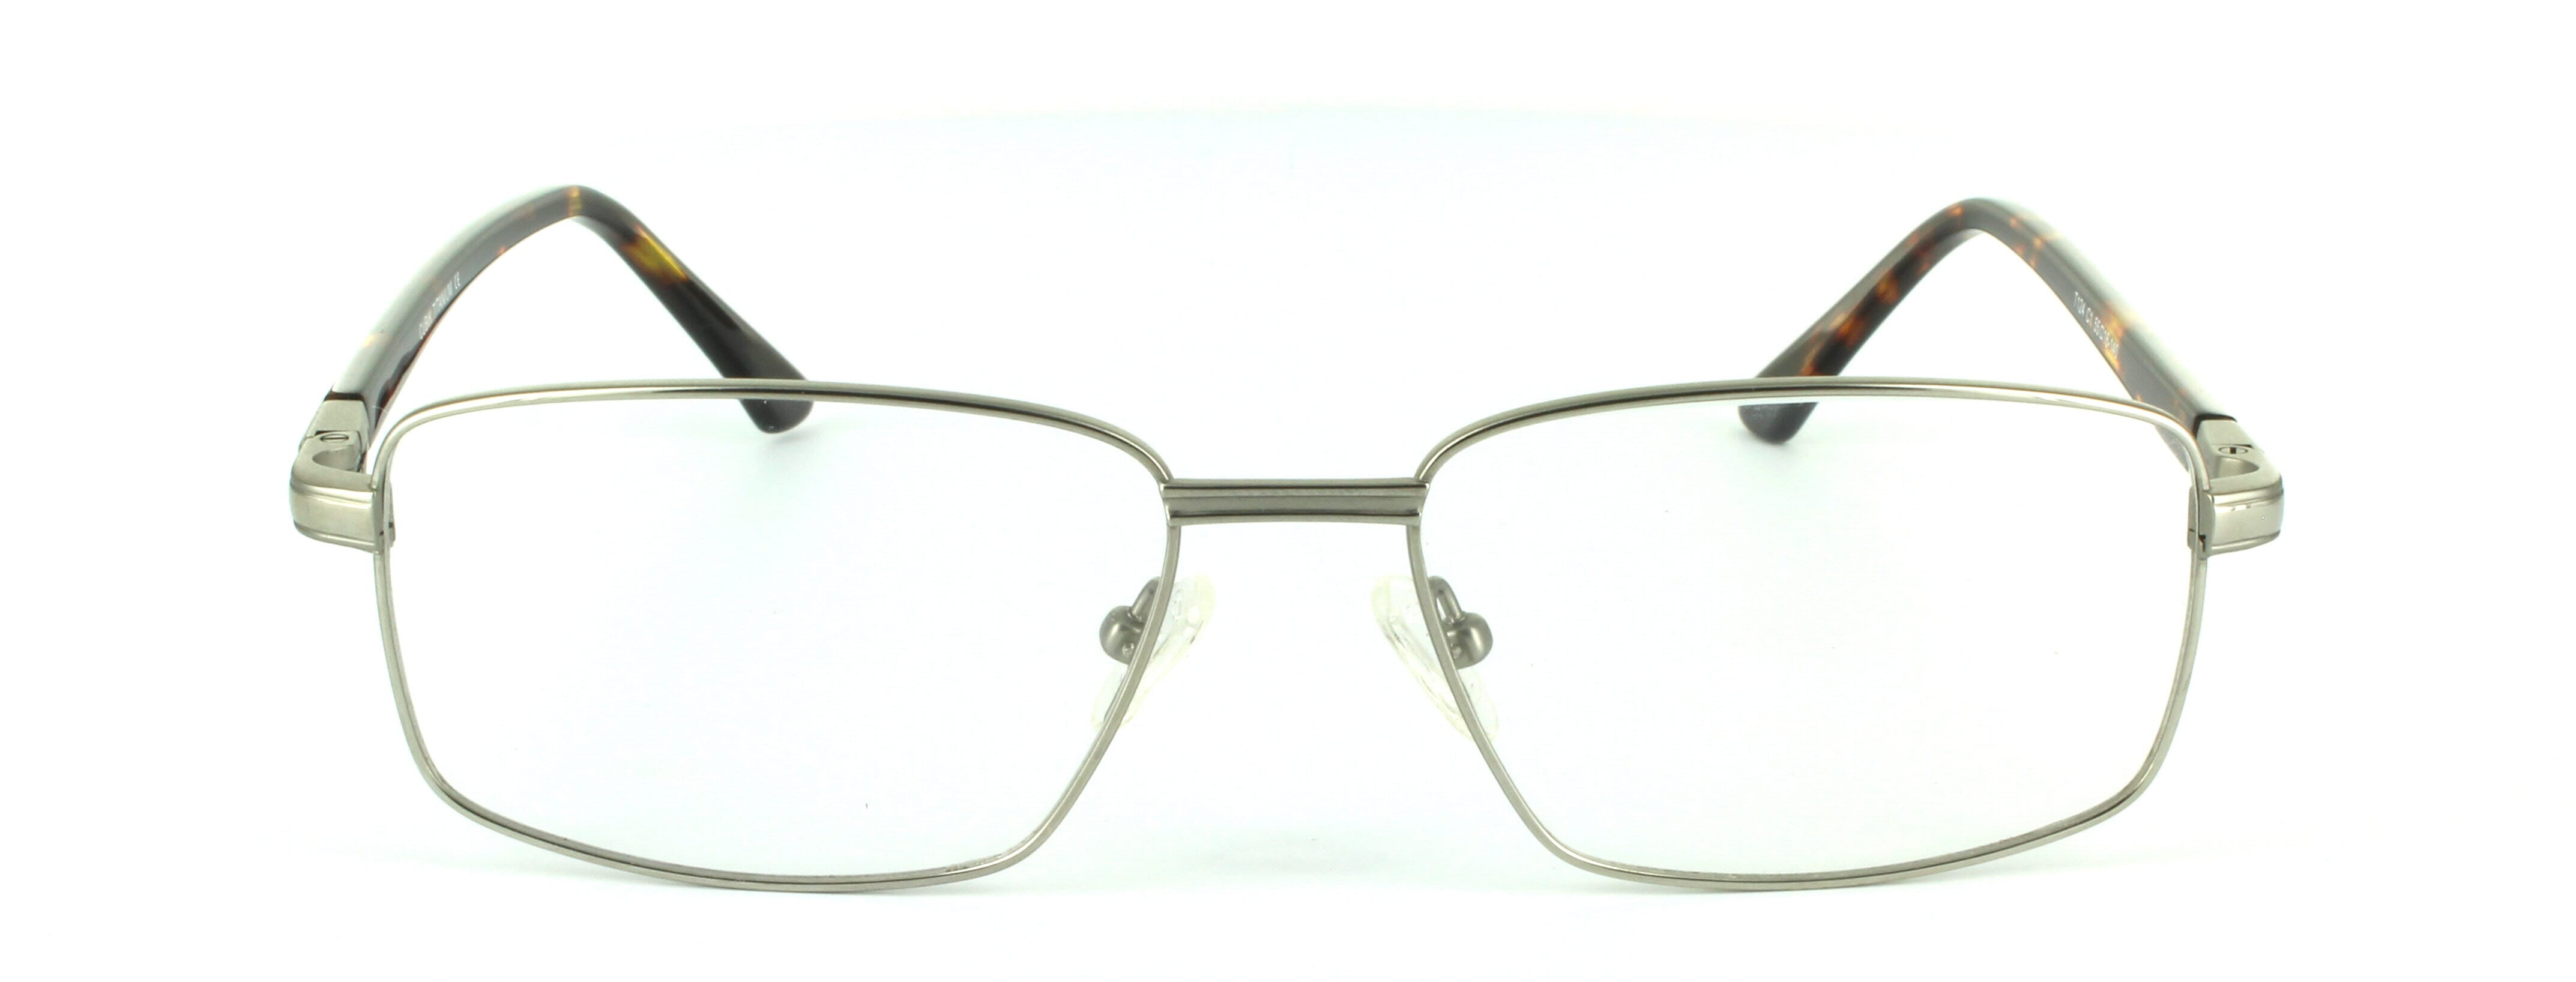 How To Identify Glasses Frame Material : Titanium Spectacles & Eyewear Glasses